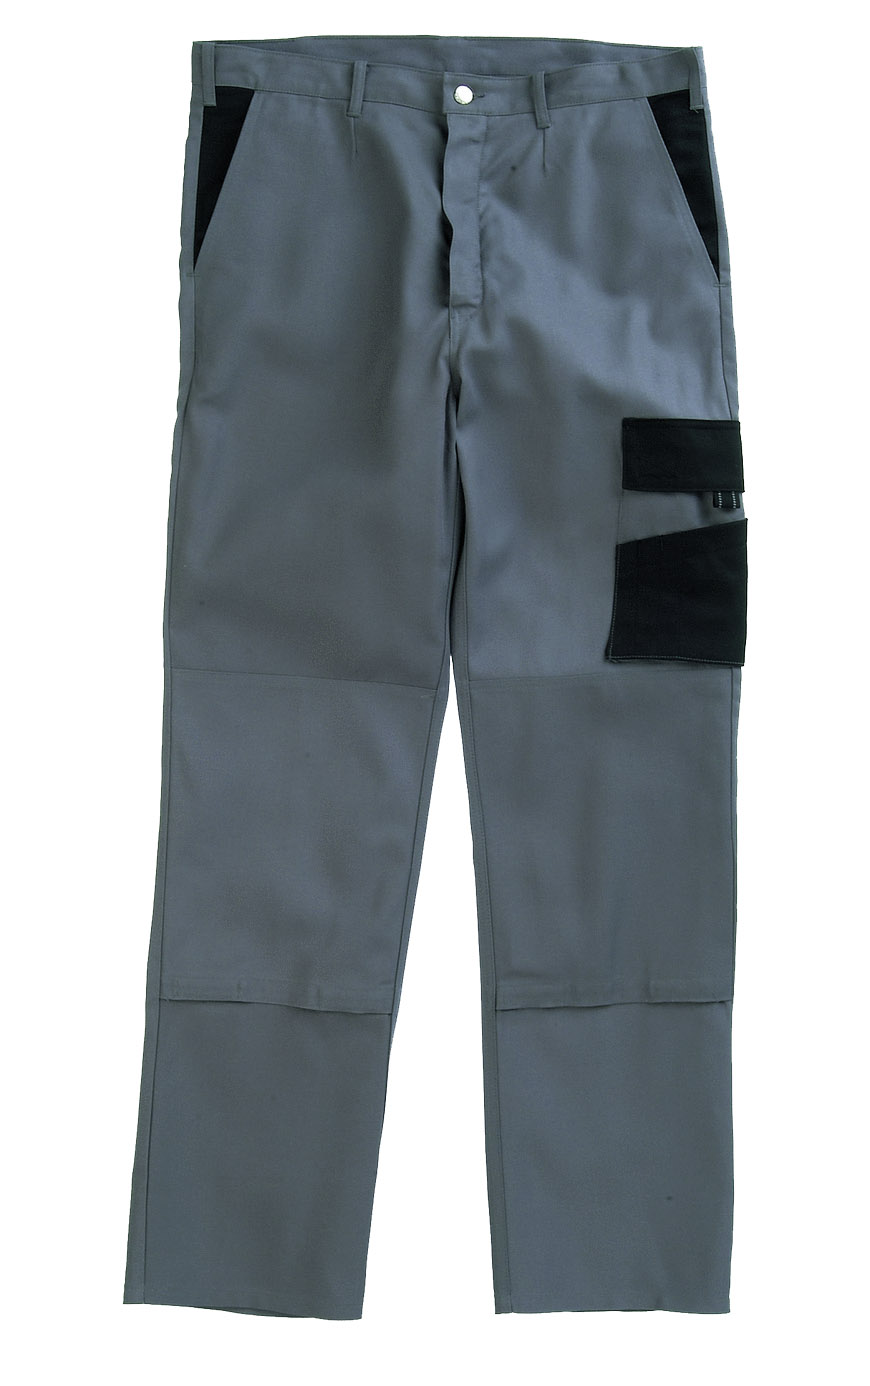 Basic Cotton Color Bundhose